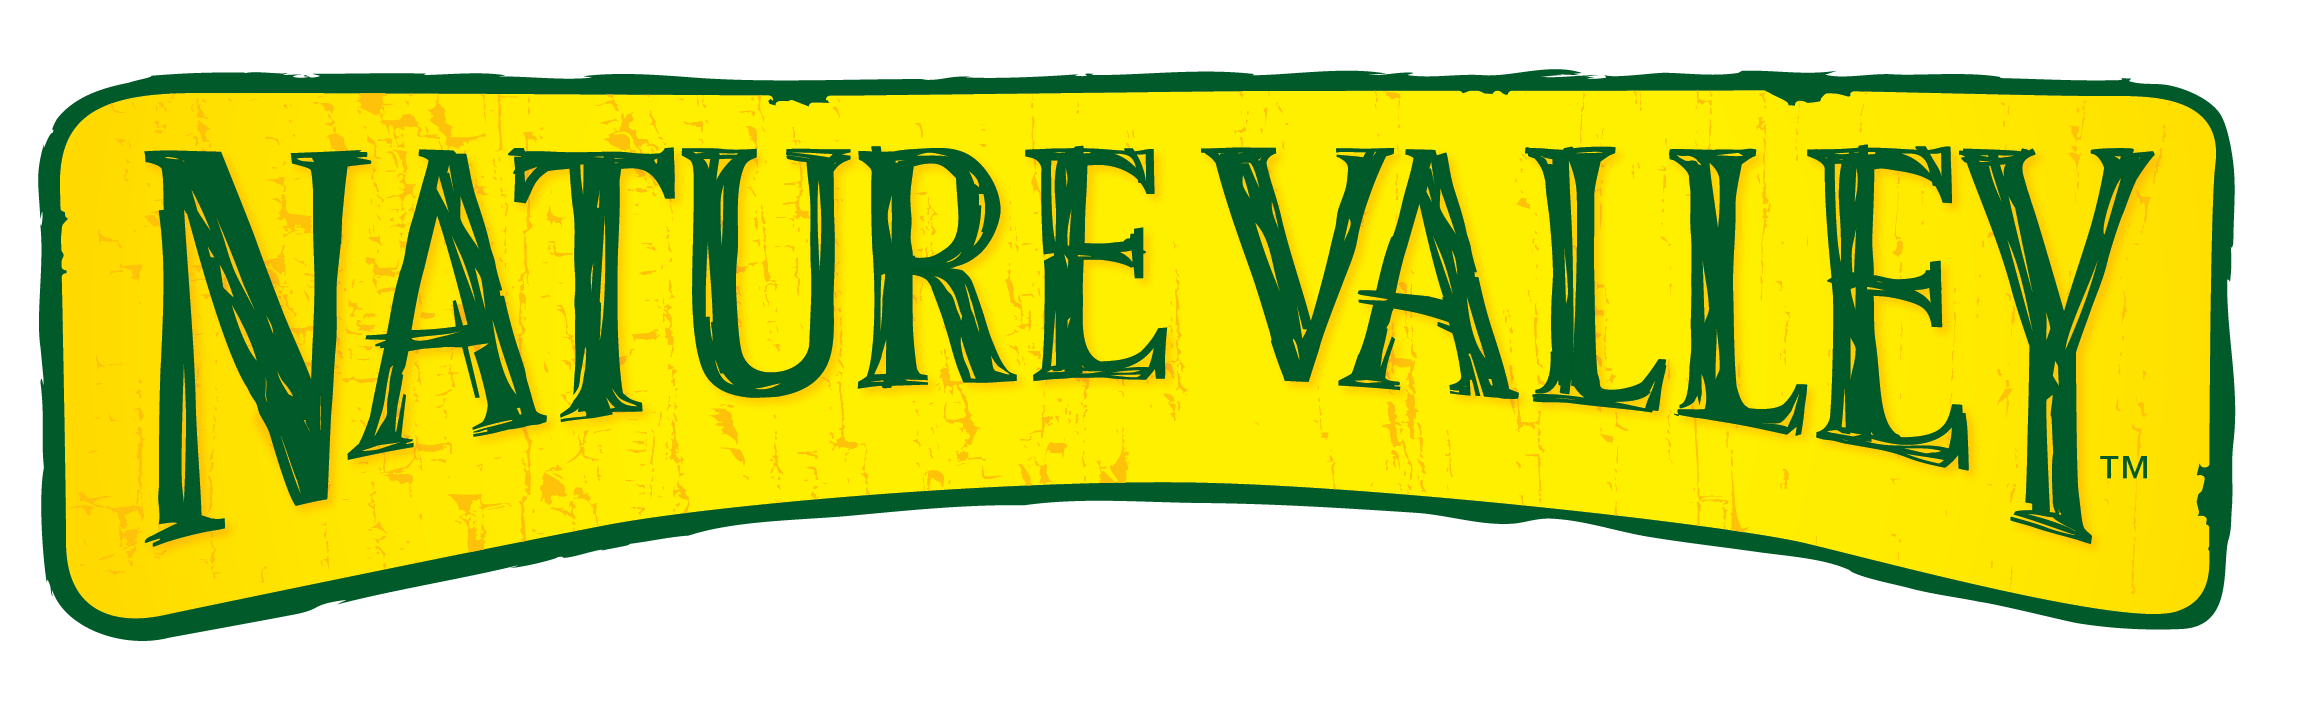 Nature Valley Logo.